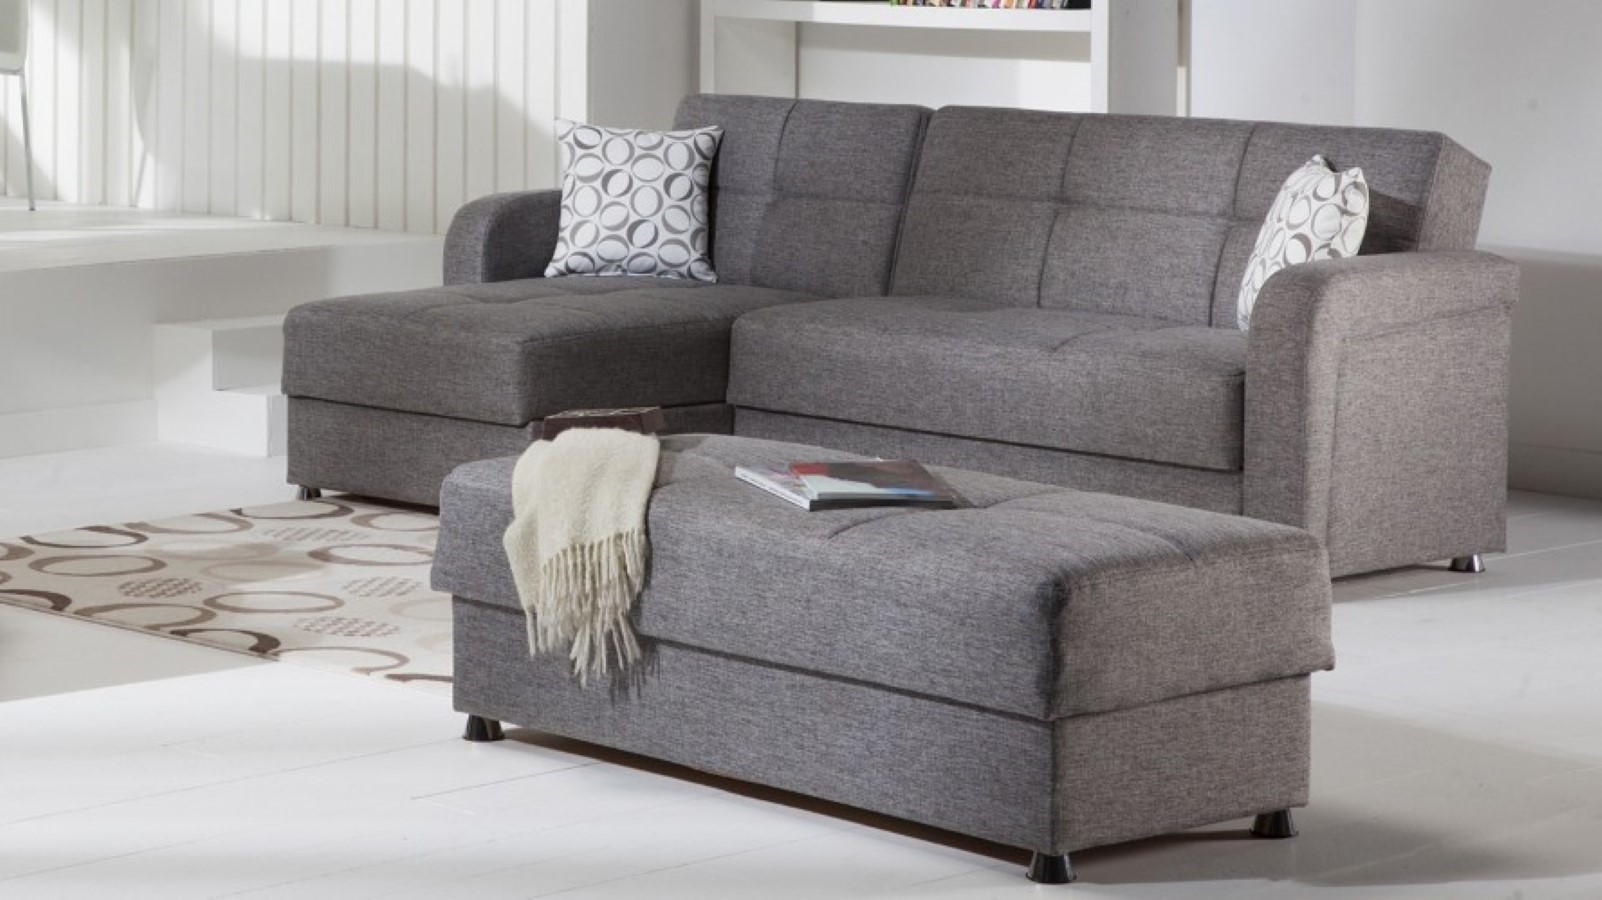 Gray sectional sofa with chaise luxurious furniture for Chaise and sofa